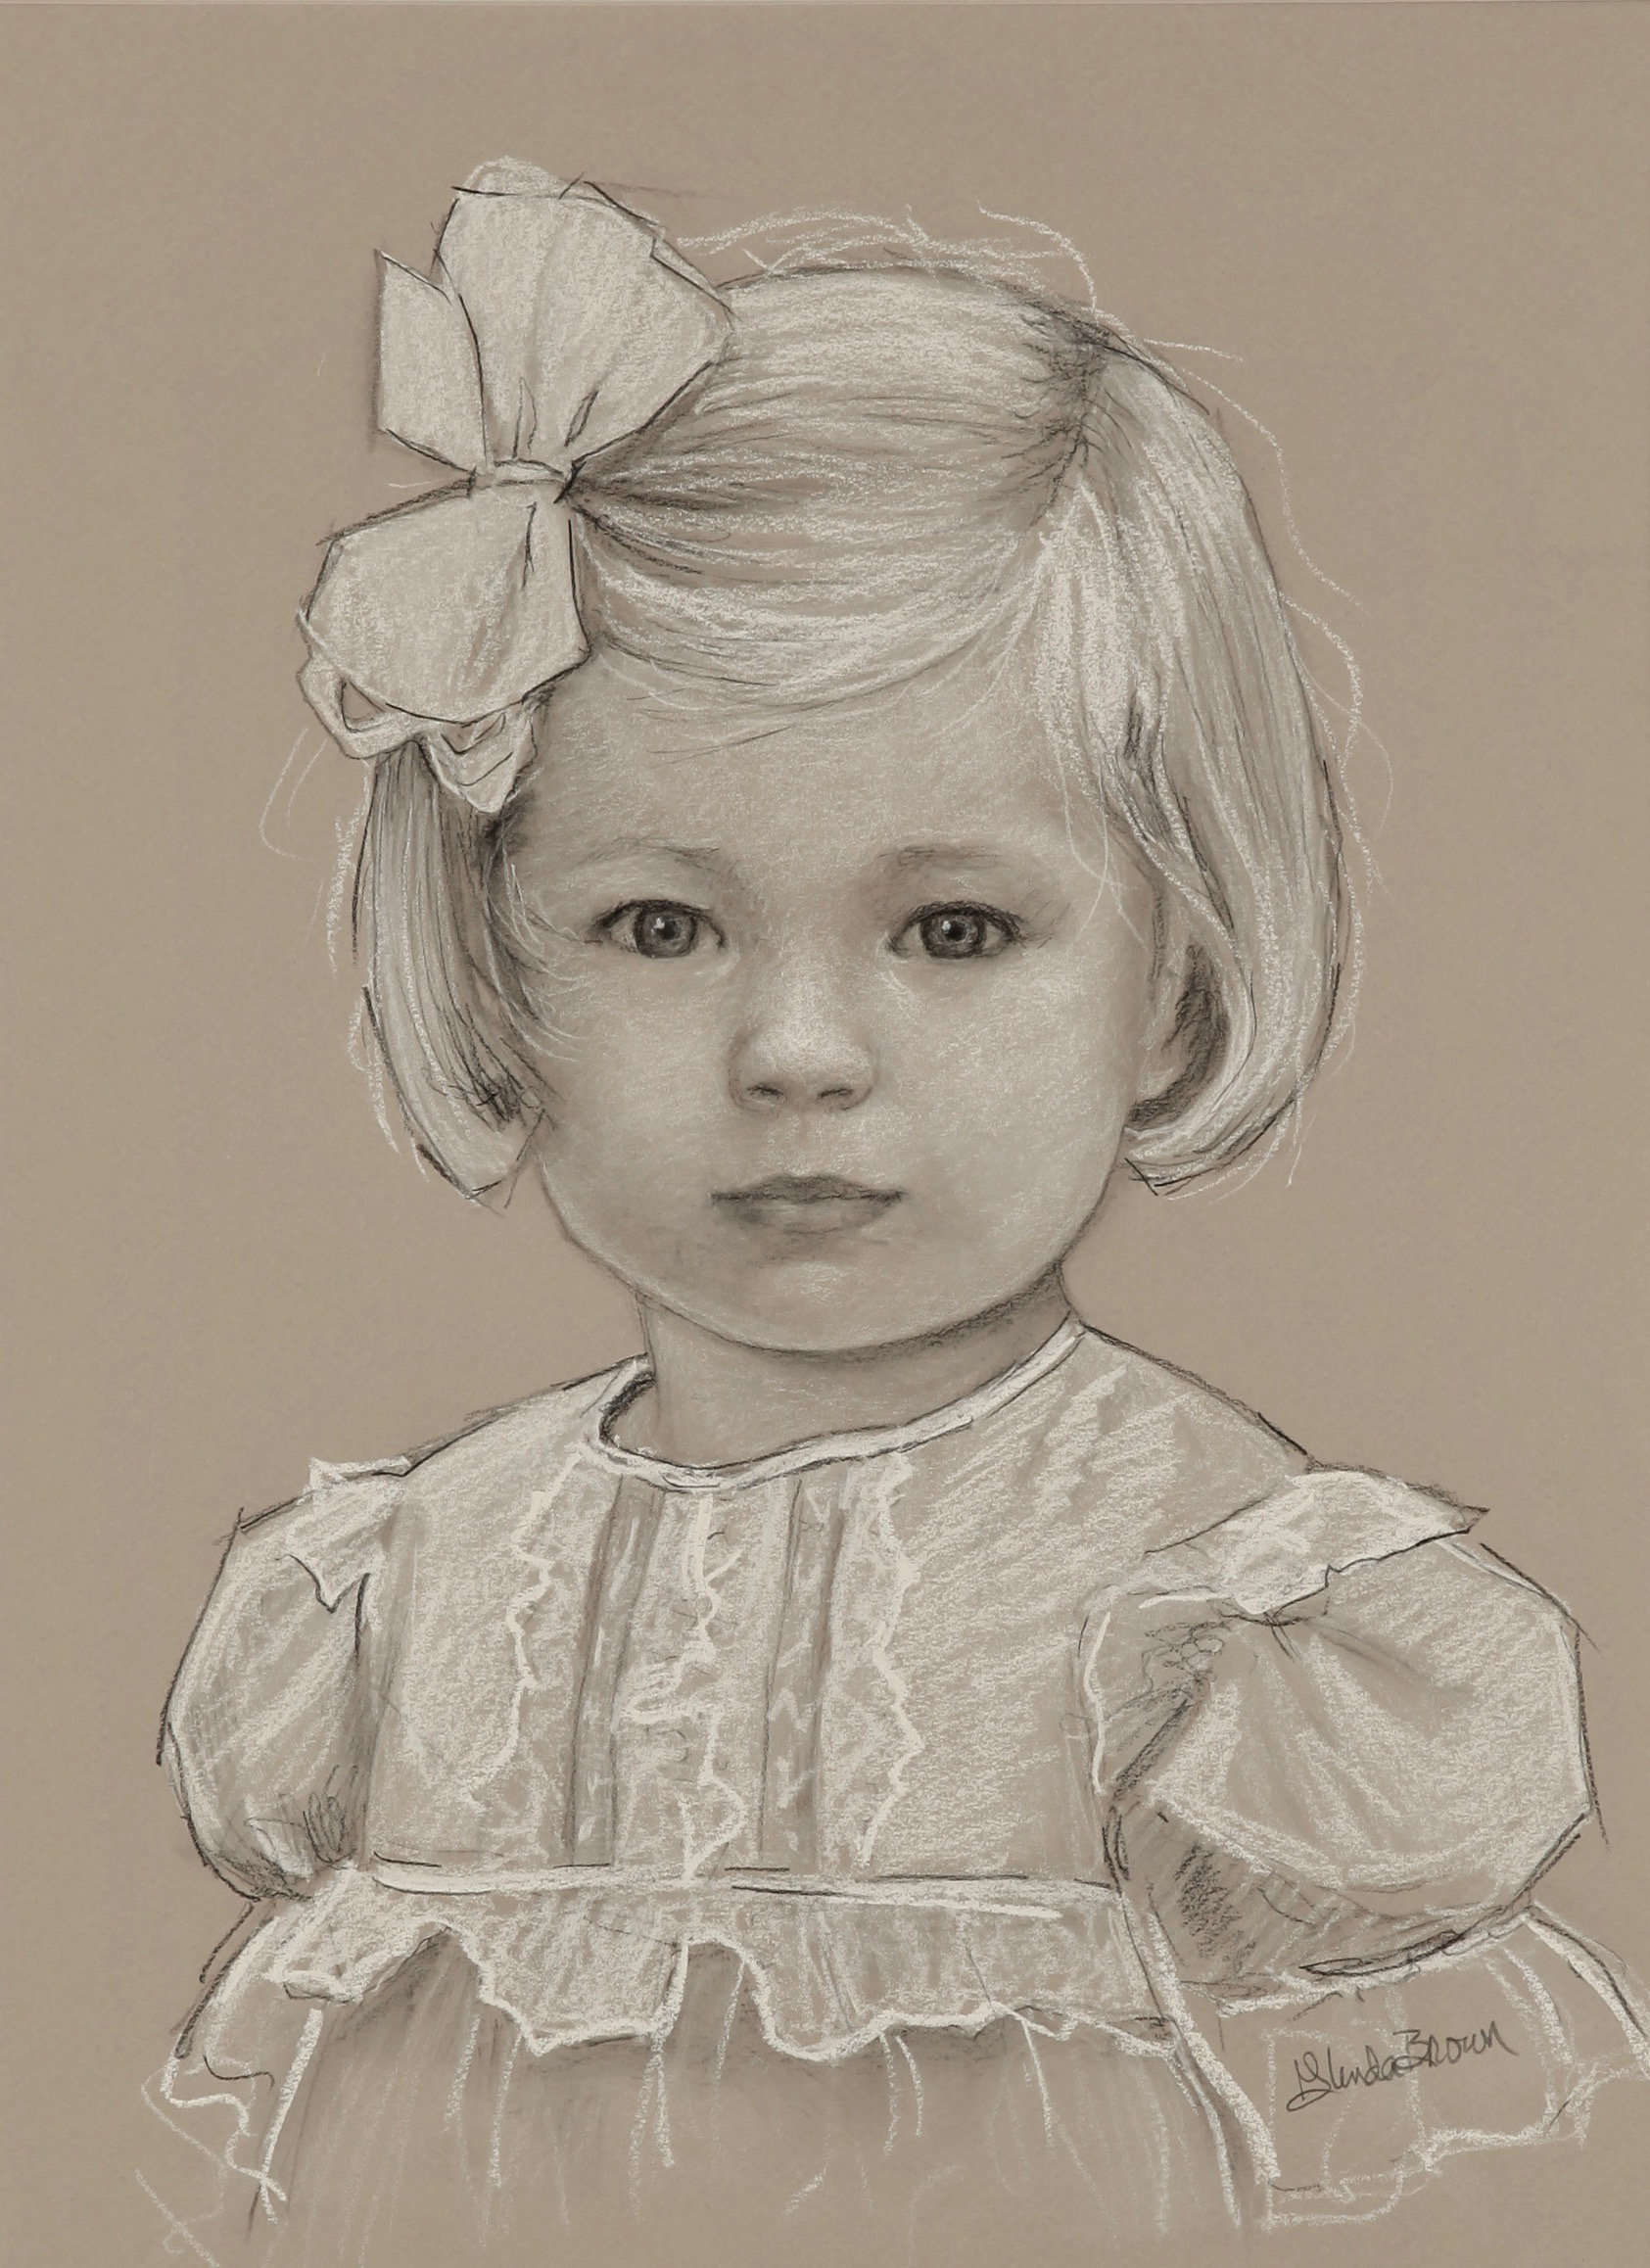 Private collection - Charcoal on Canson Paper - 14.5x10.5